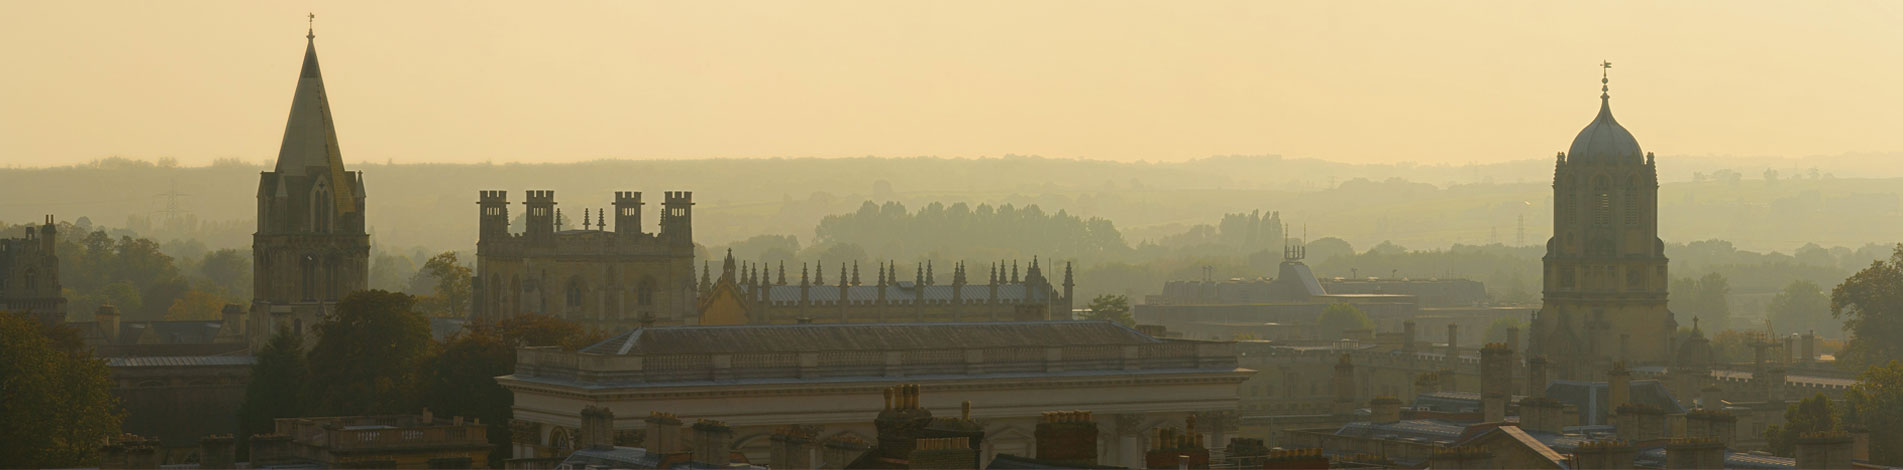 oxford-skyline-banner